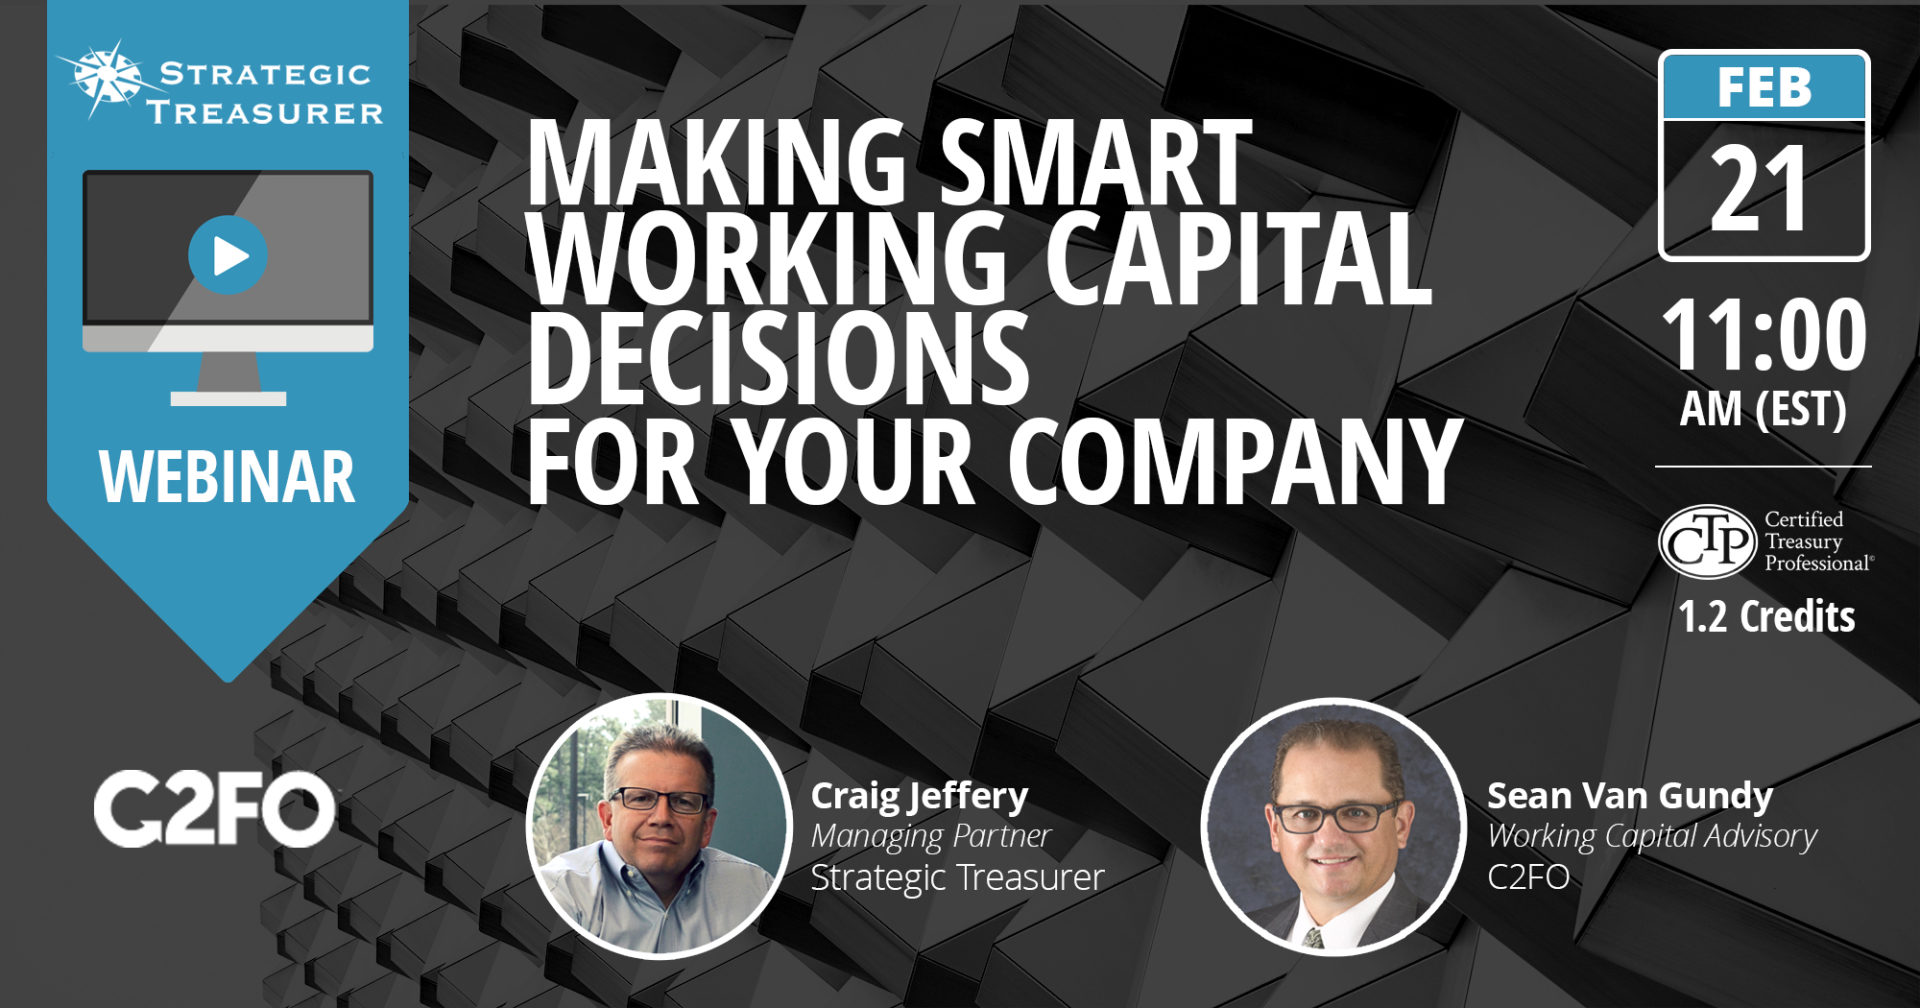 Making Smart Working Capital Decisions for Your Company